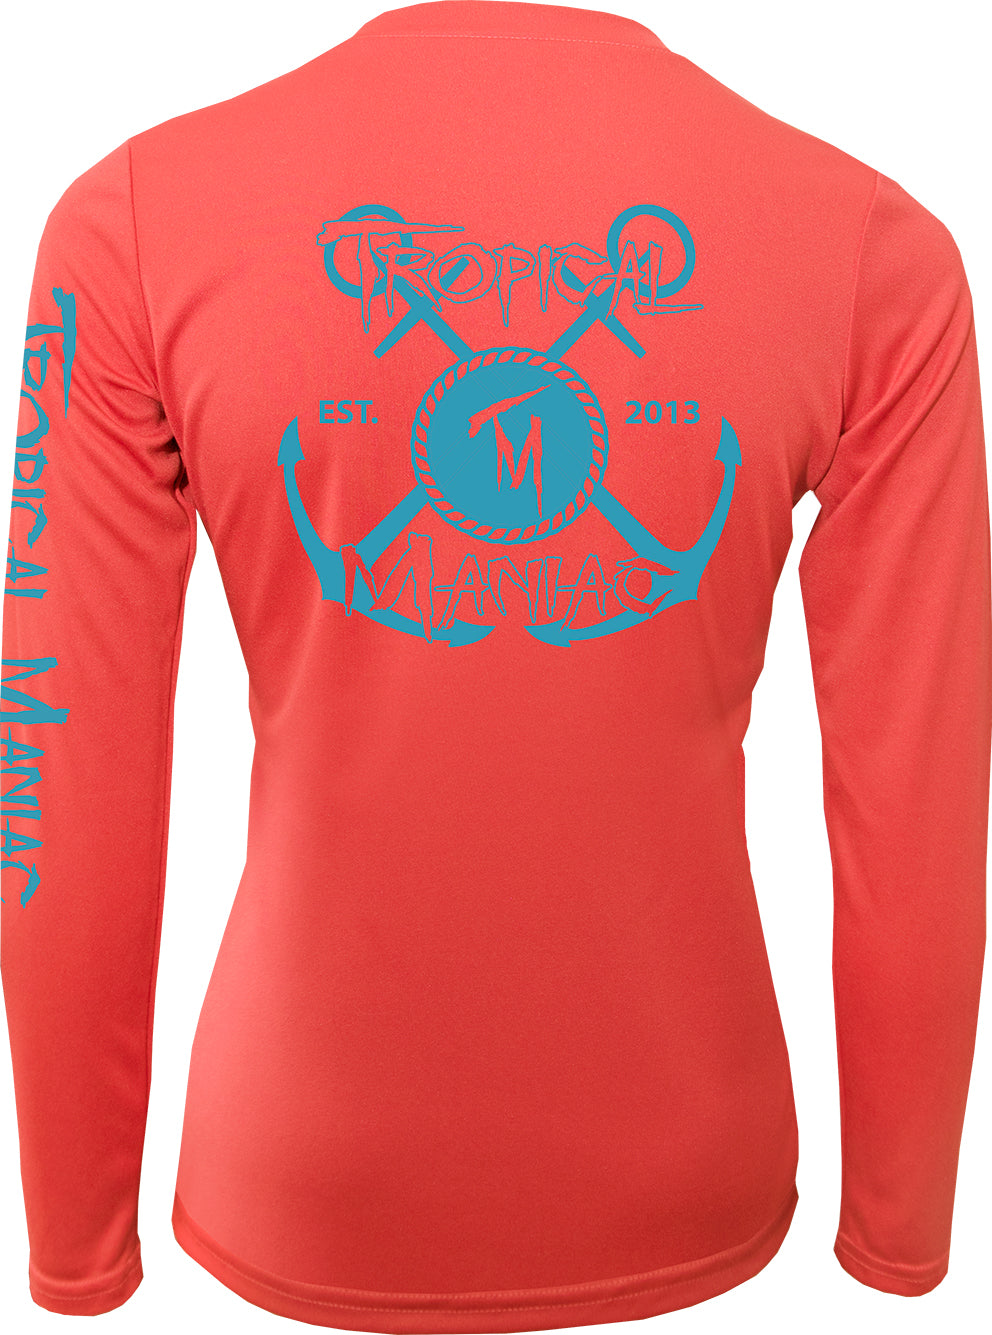 Ladies TM Cross Anchor Long Sleeve Performance V-Neck